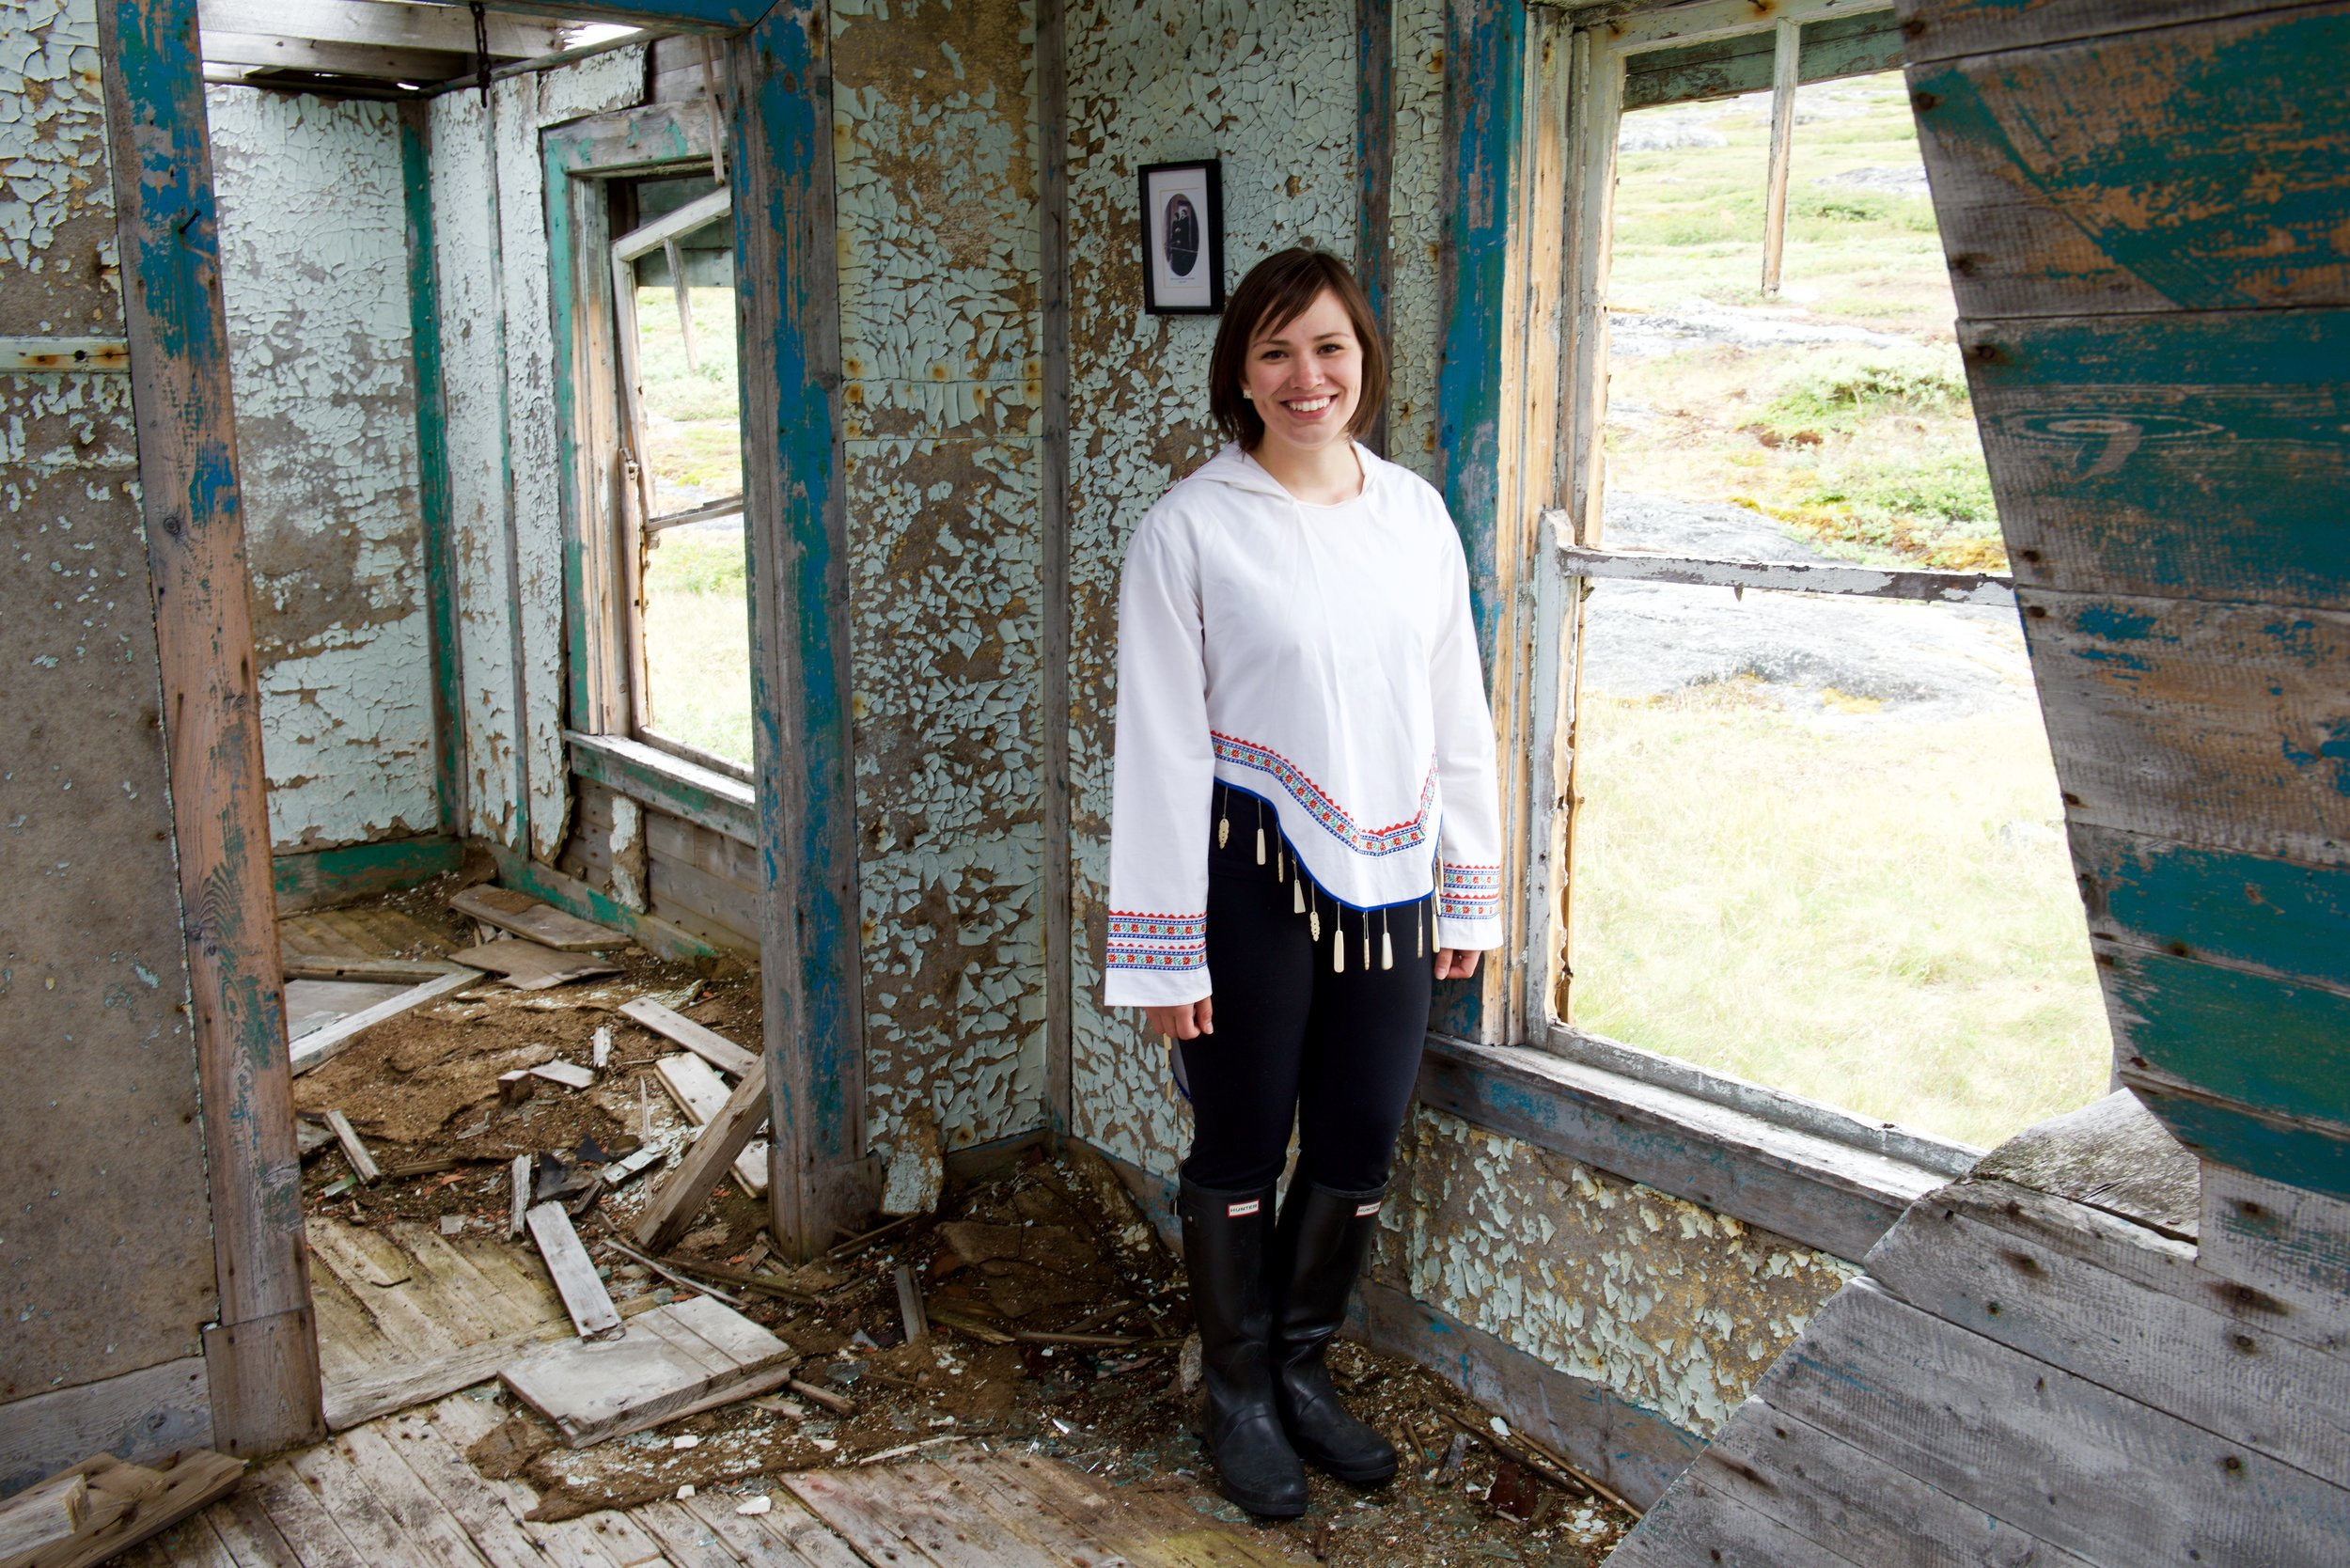 Caitlyn Baikie, from Nain, stands in her great-grandmothers house in Hebron, Nunatsiavut.